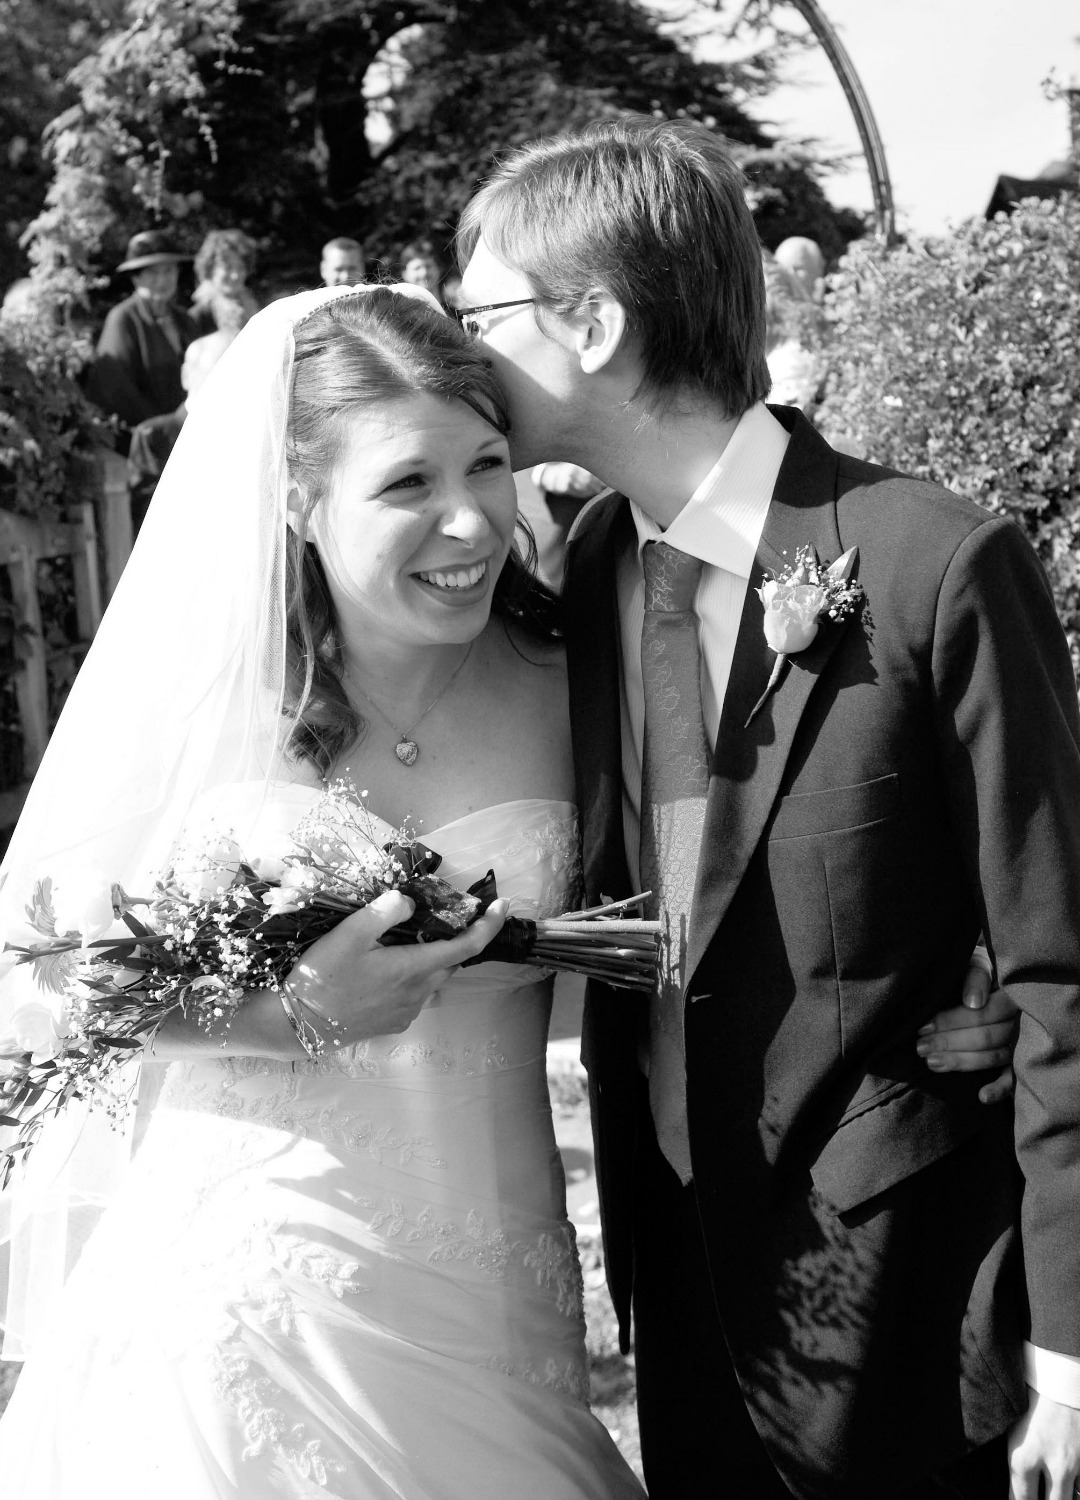 A photograph of a bride ad groom on their wedding day - the groom is kissing the bride on her head and she is smiling - Nine Reasons Why I Love You - Mrs H's favourite things